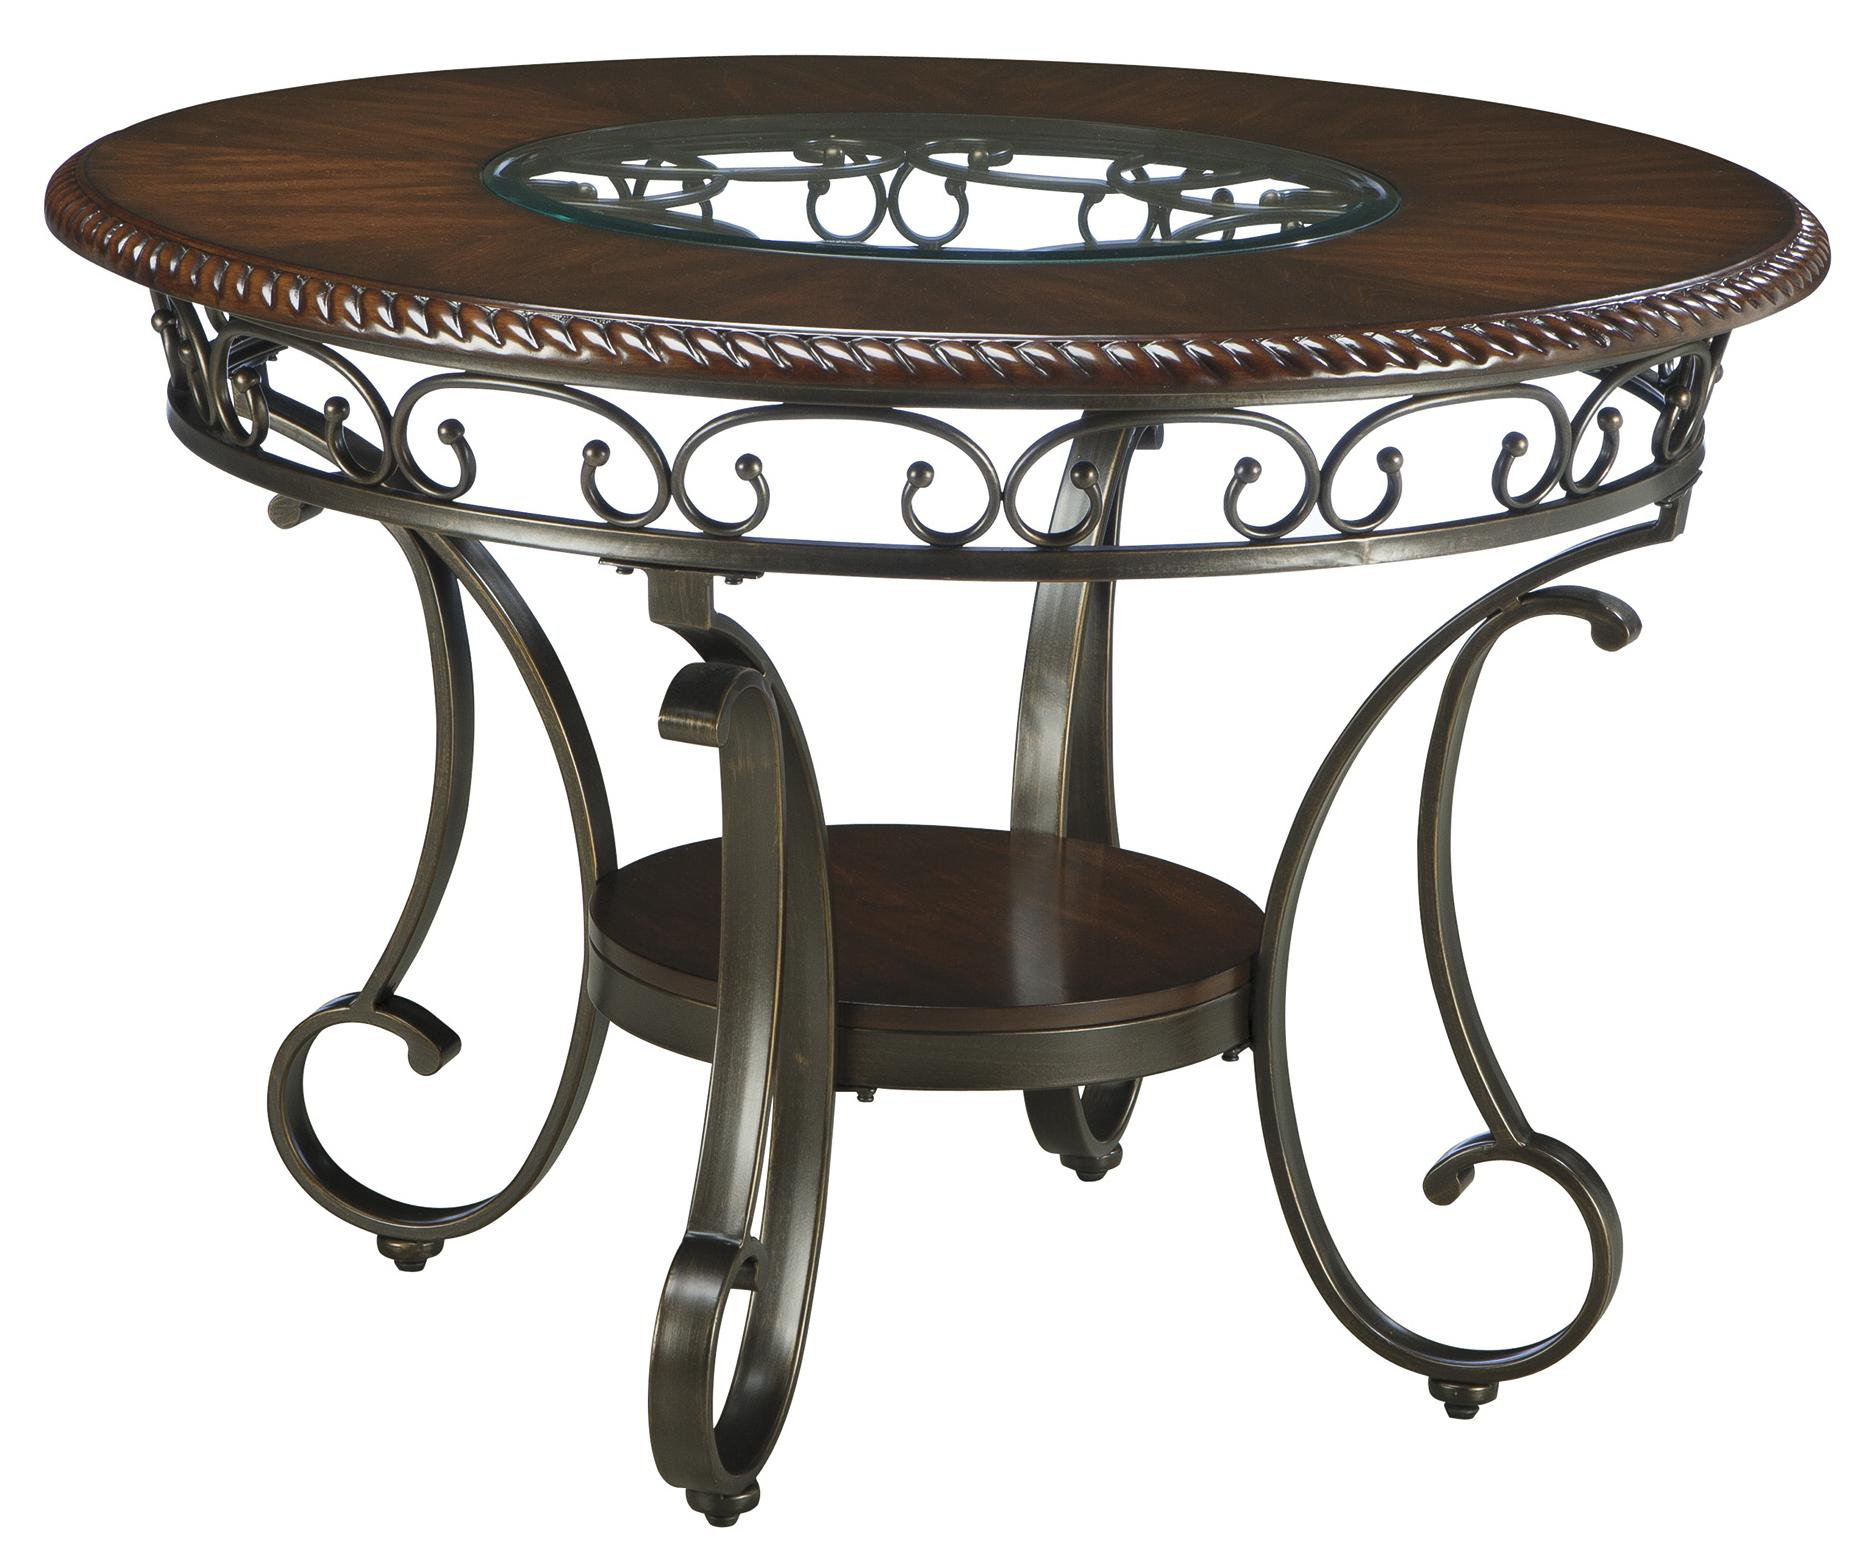 Glambrey Round Dining Room Table by Signature Design by Ashley at Furniture Fair - North Carolina